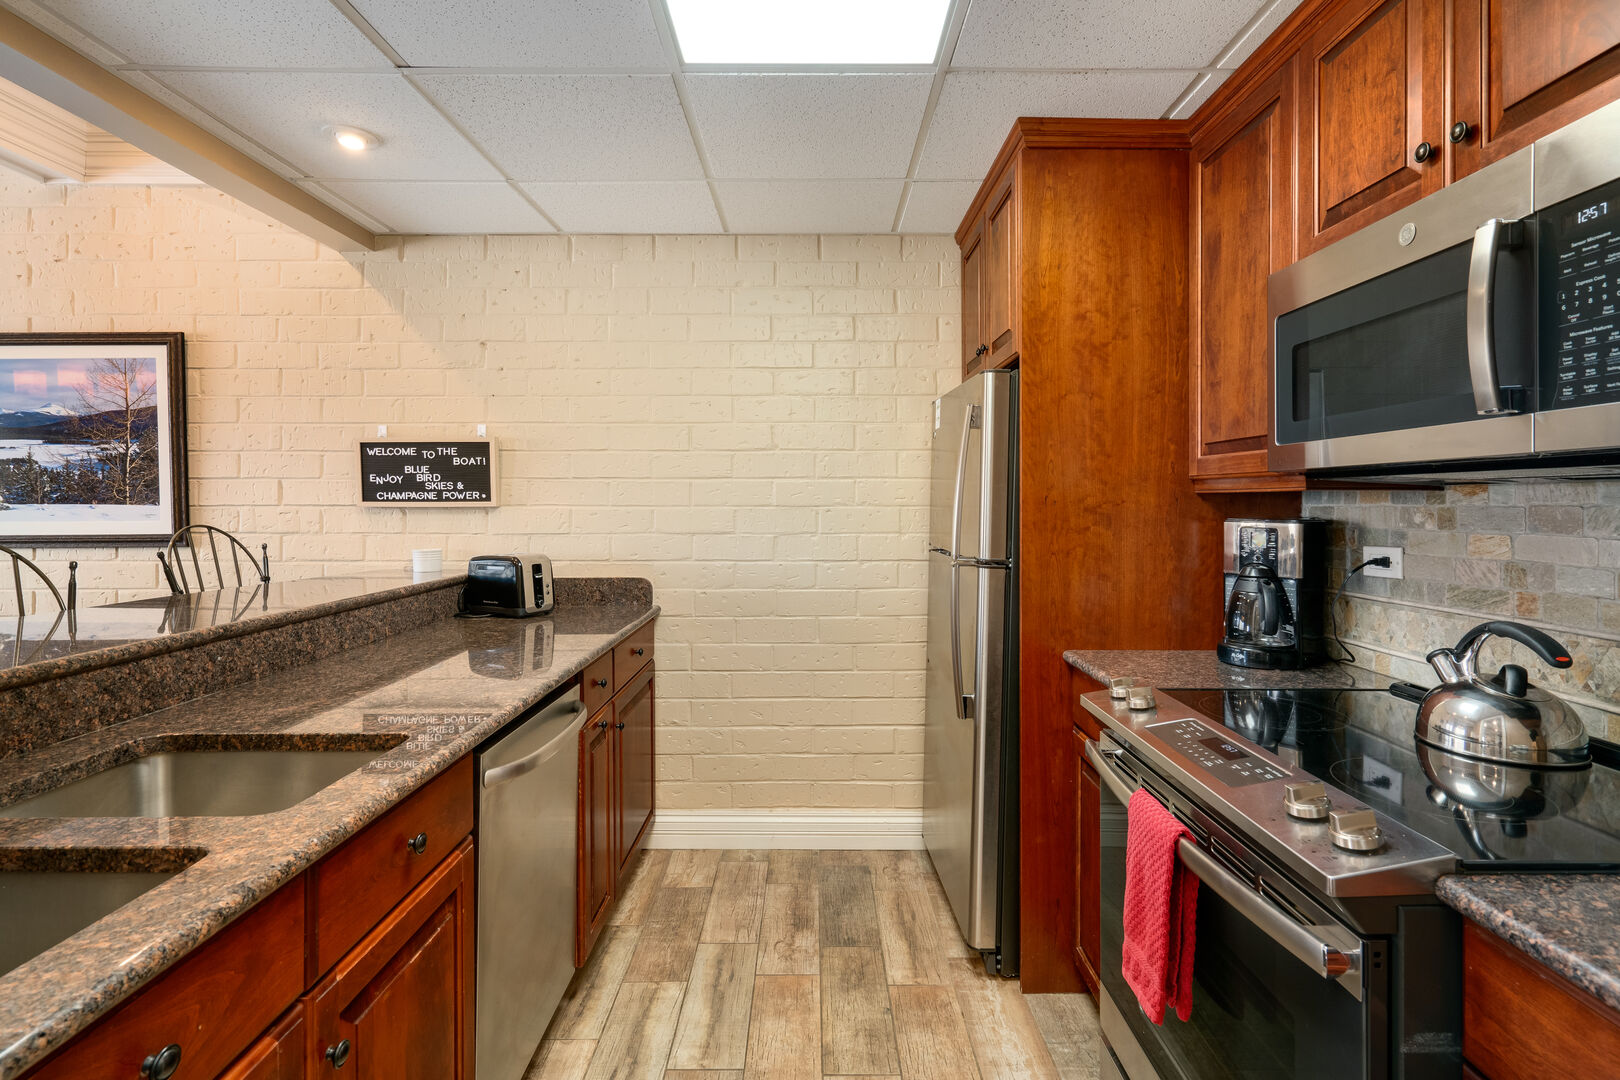 Stainless appliances in our efficient kitchen.